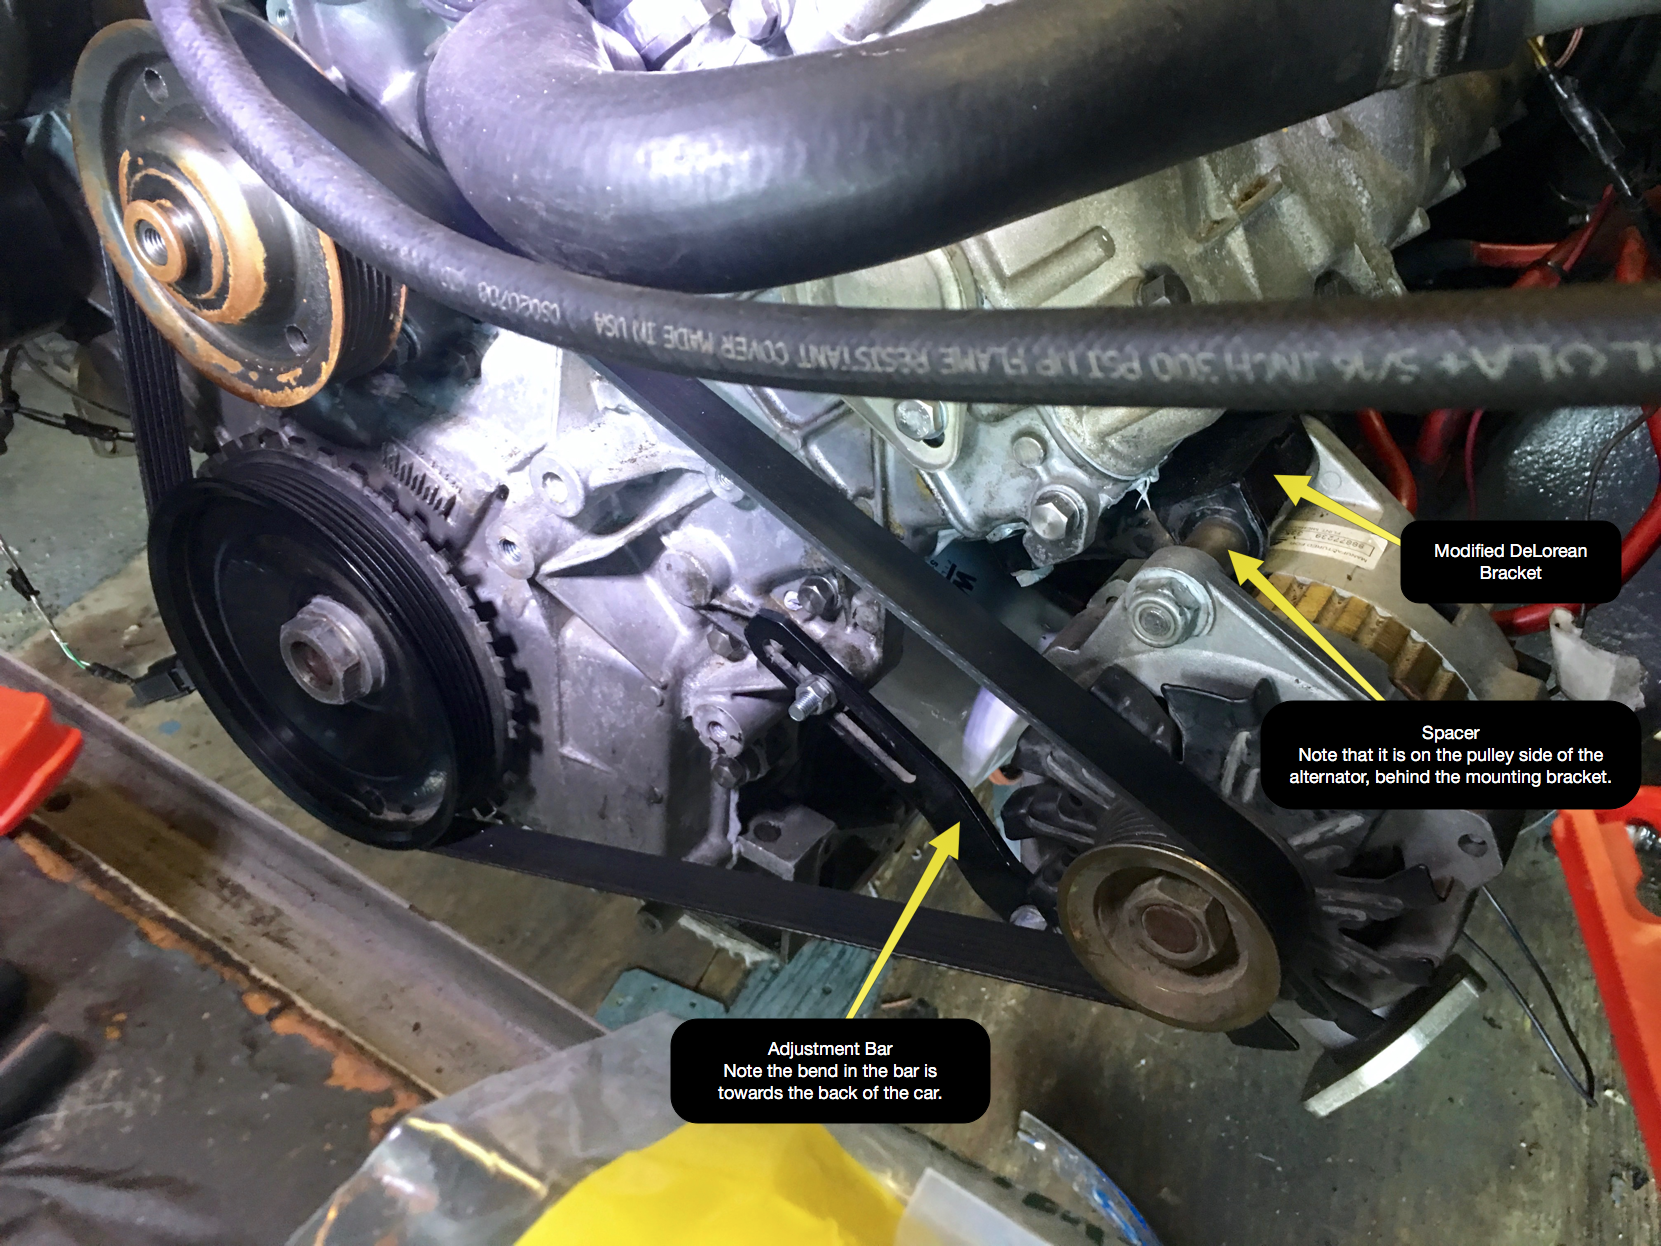 The various parts of the correctly installed alternator, with the belt mounted and tightened.